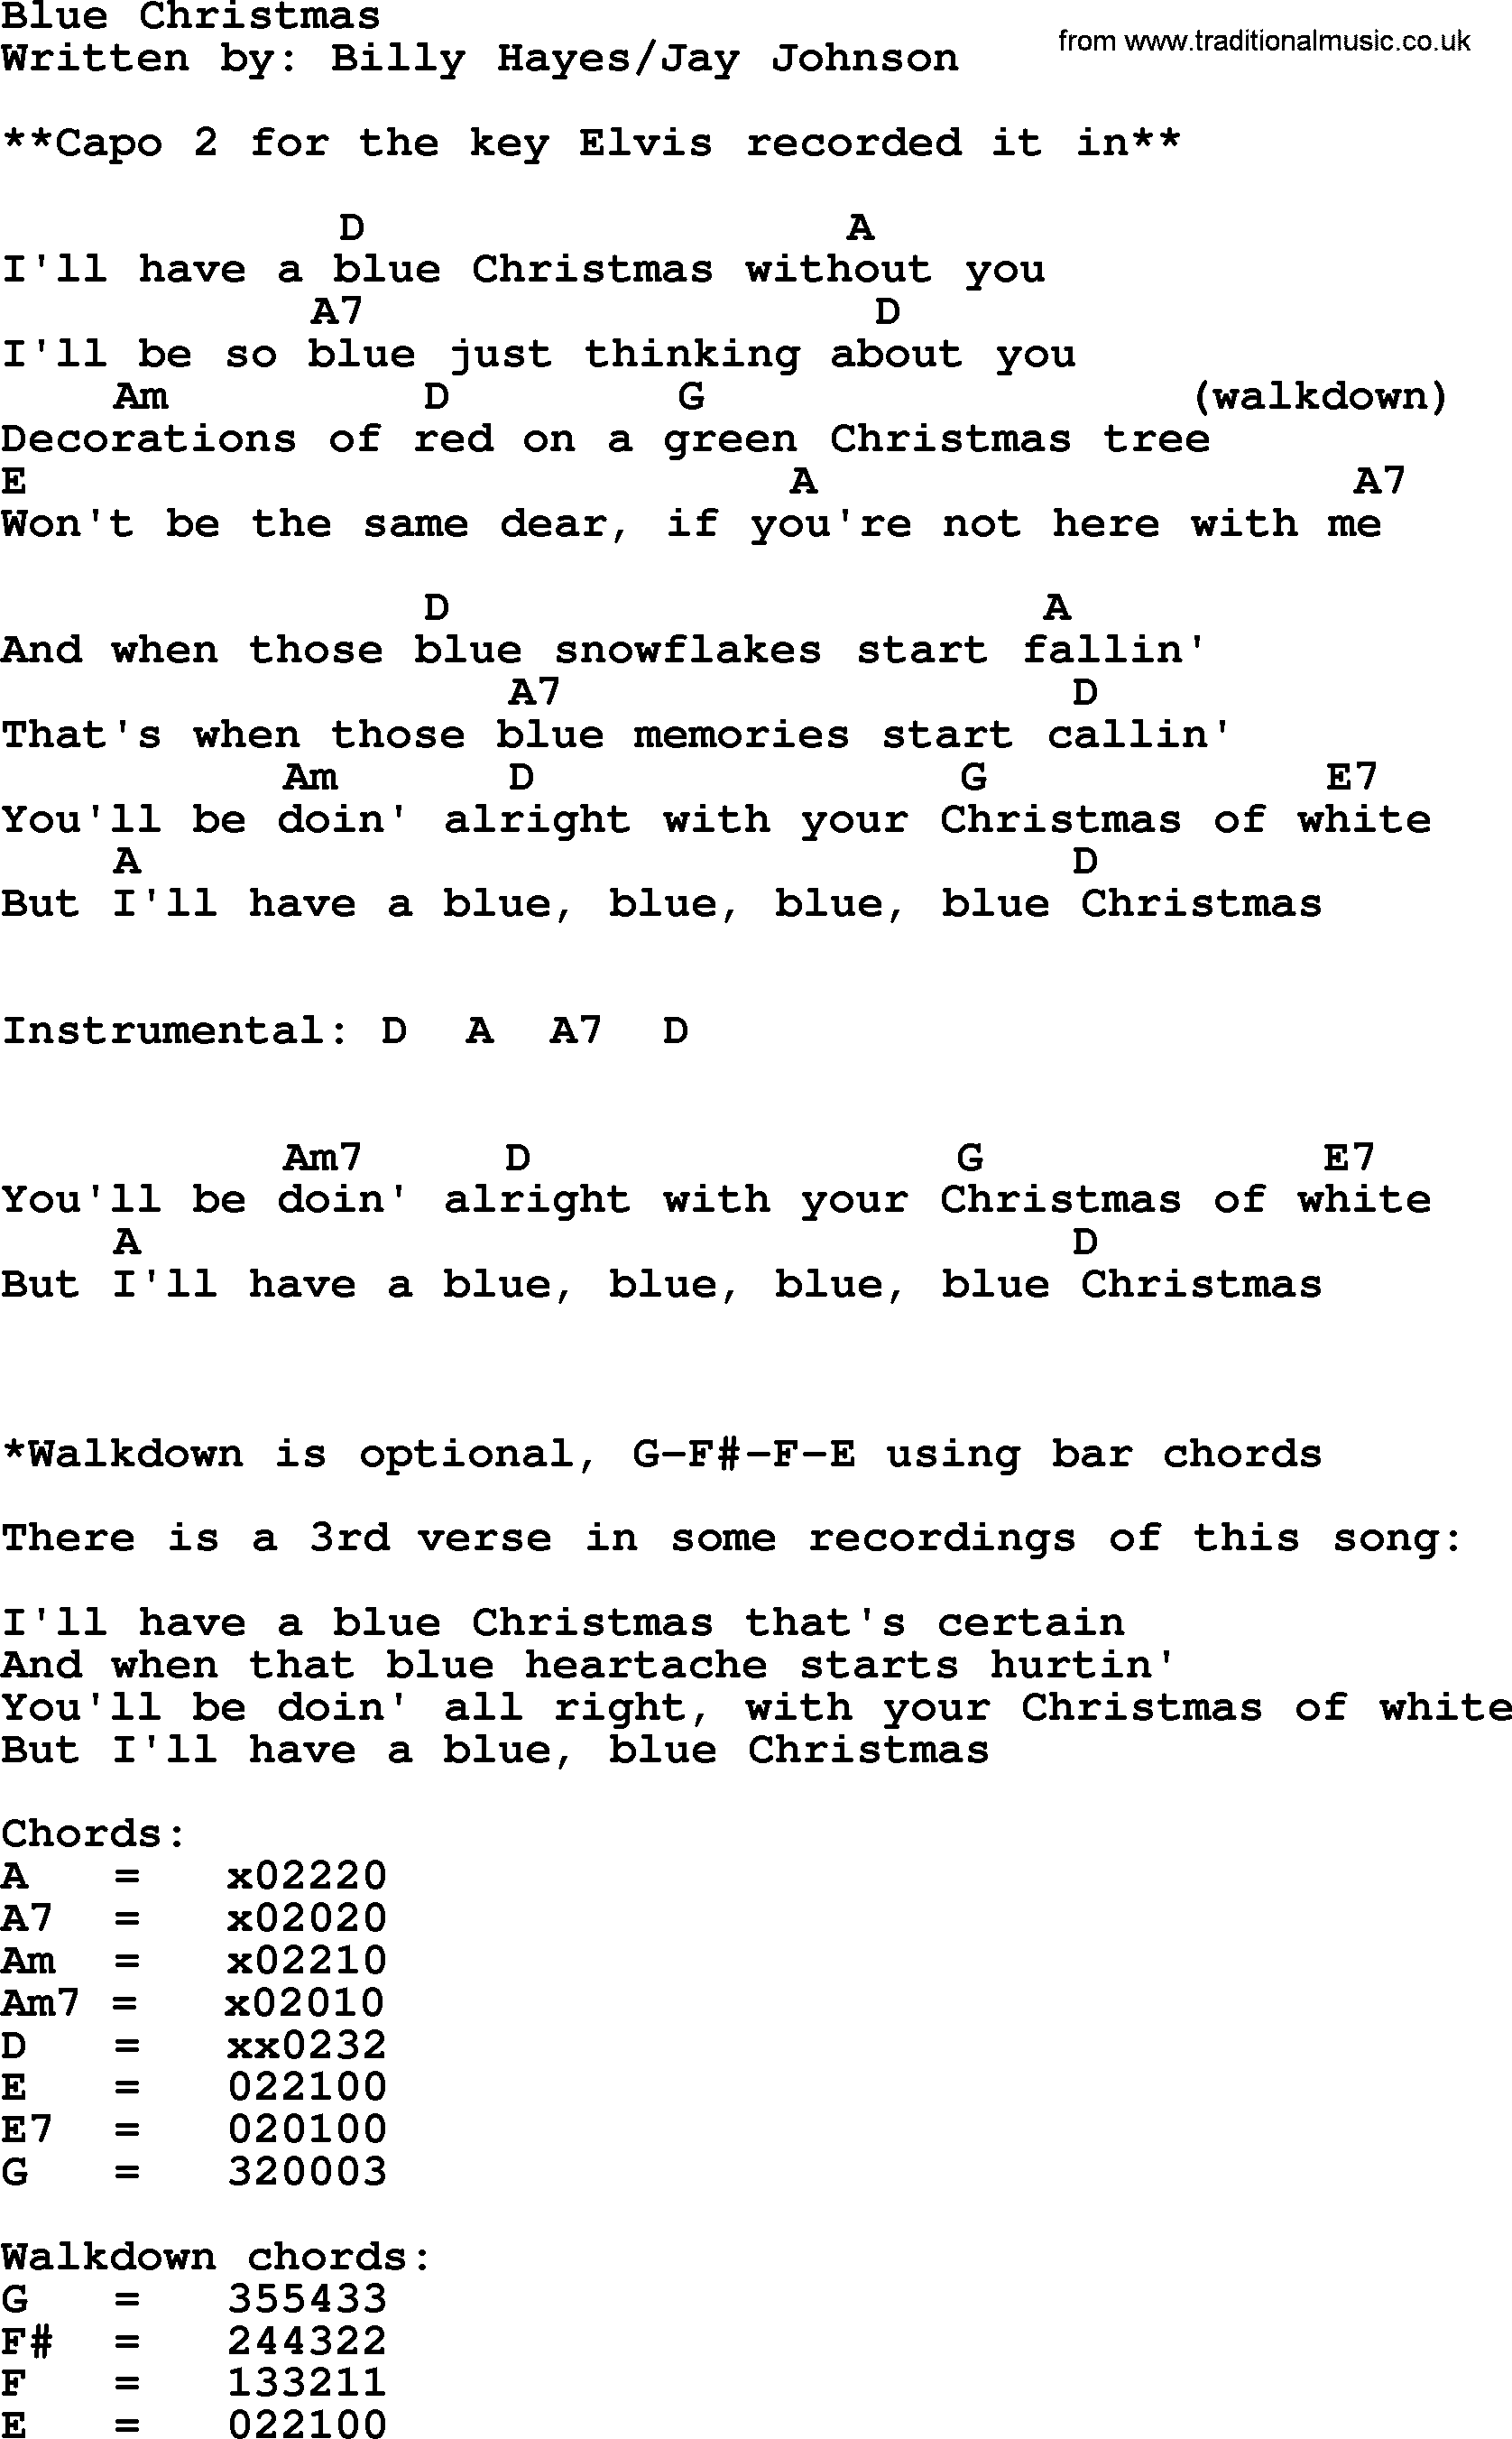 Blue Christmas, by Elvis Presley - lyrics and chords